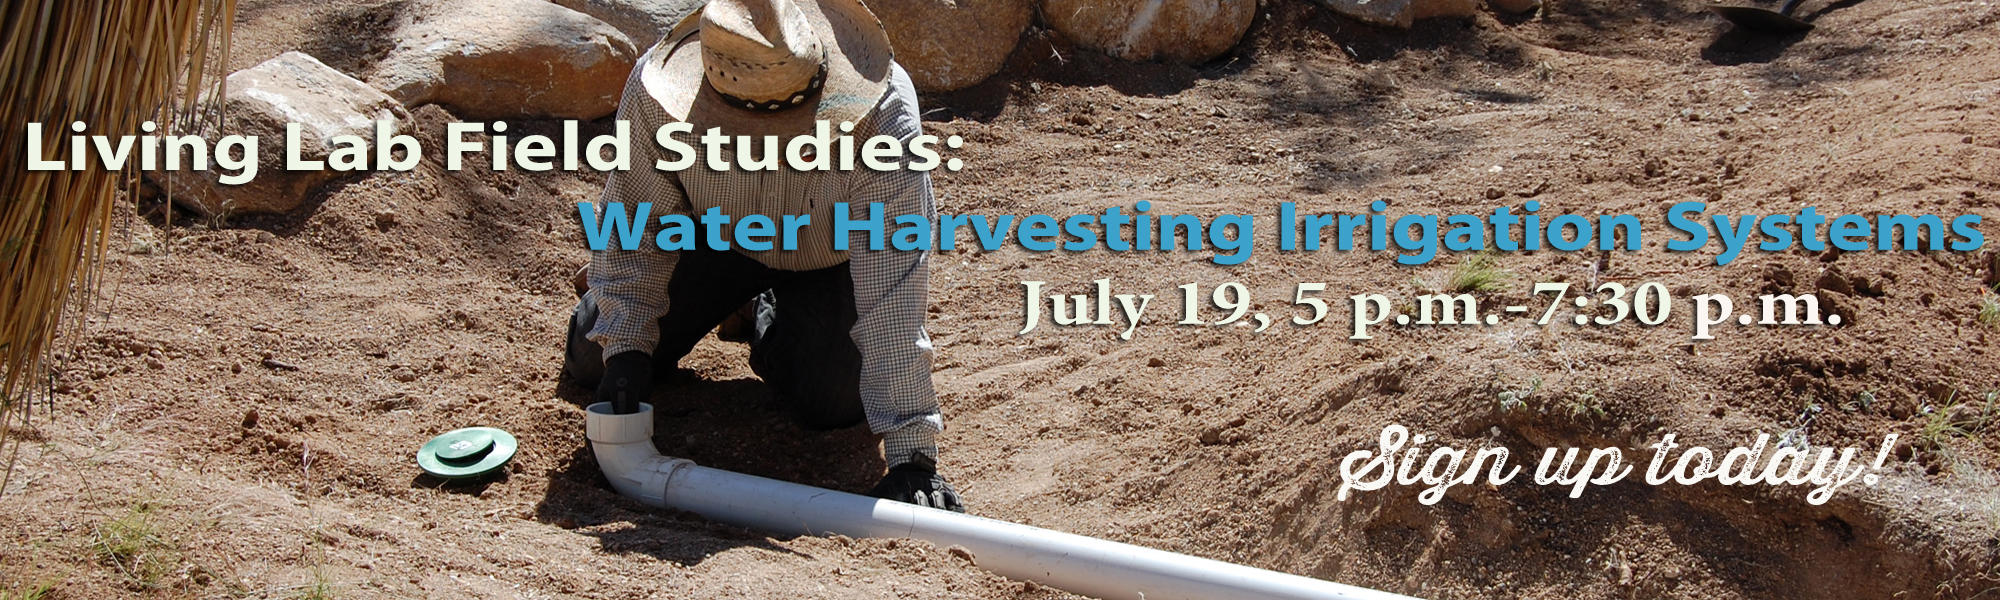 Water harvesting irrigation class